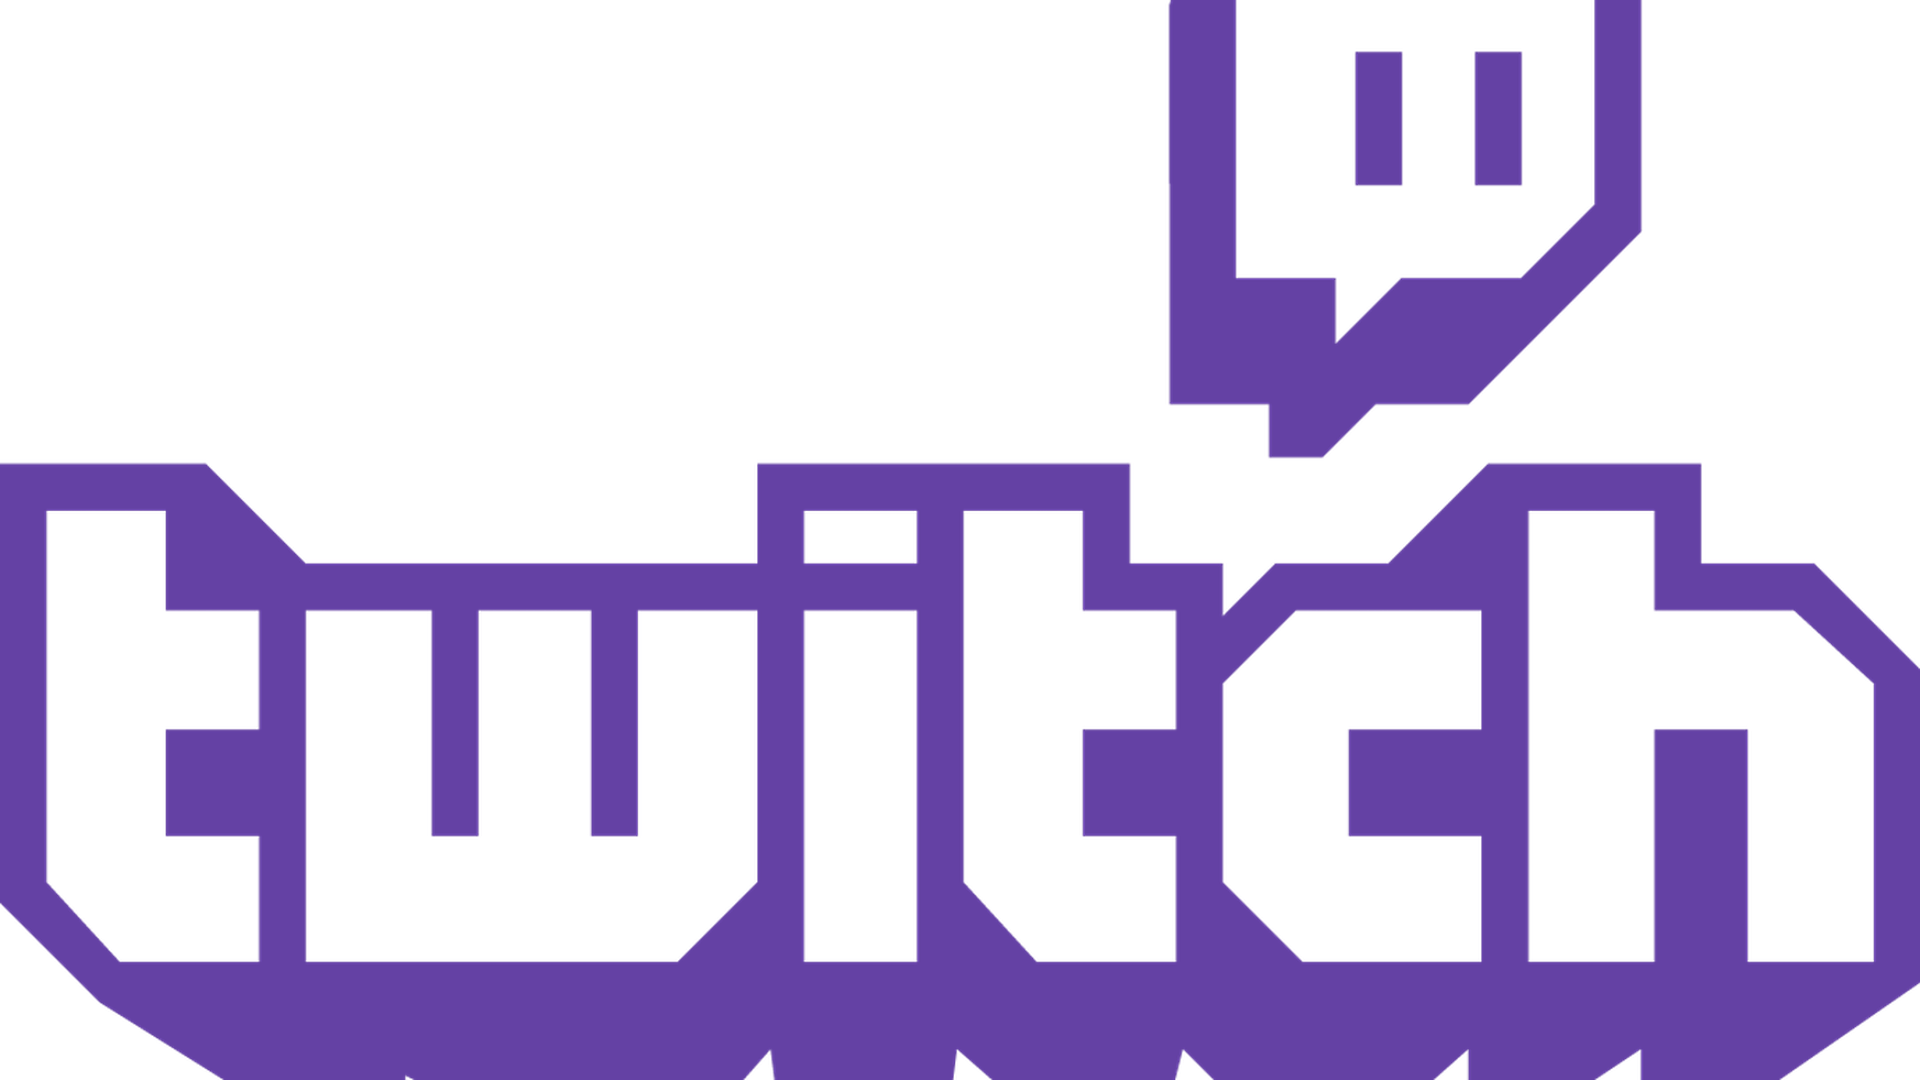 The logo for Twitch, the Amazon-owned video service widely used for streaming video games